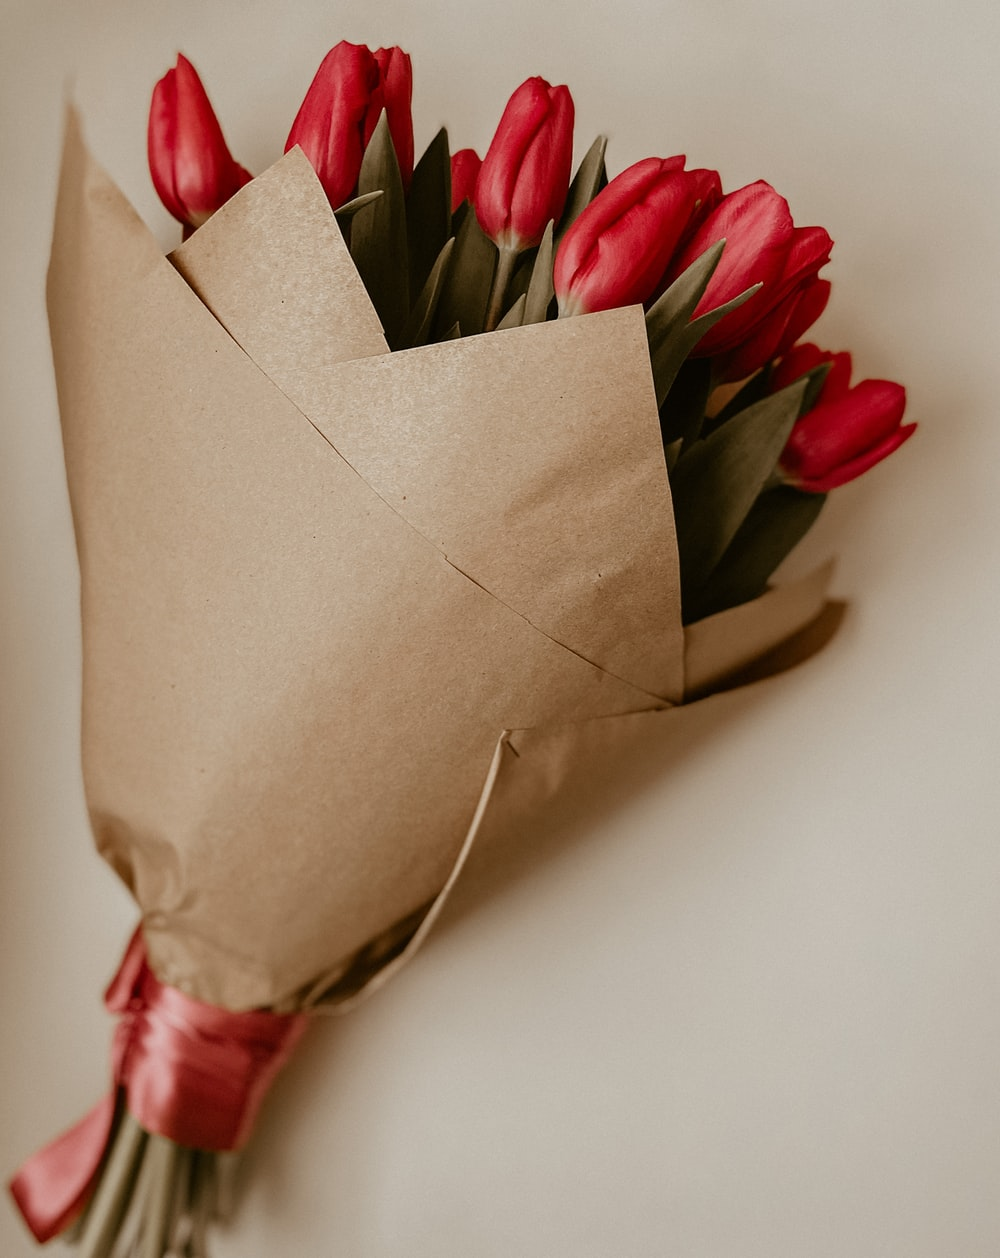 red and green flower petals on brown paper bag